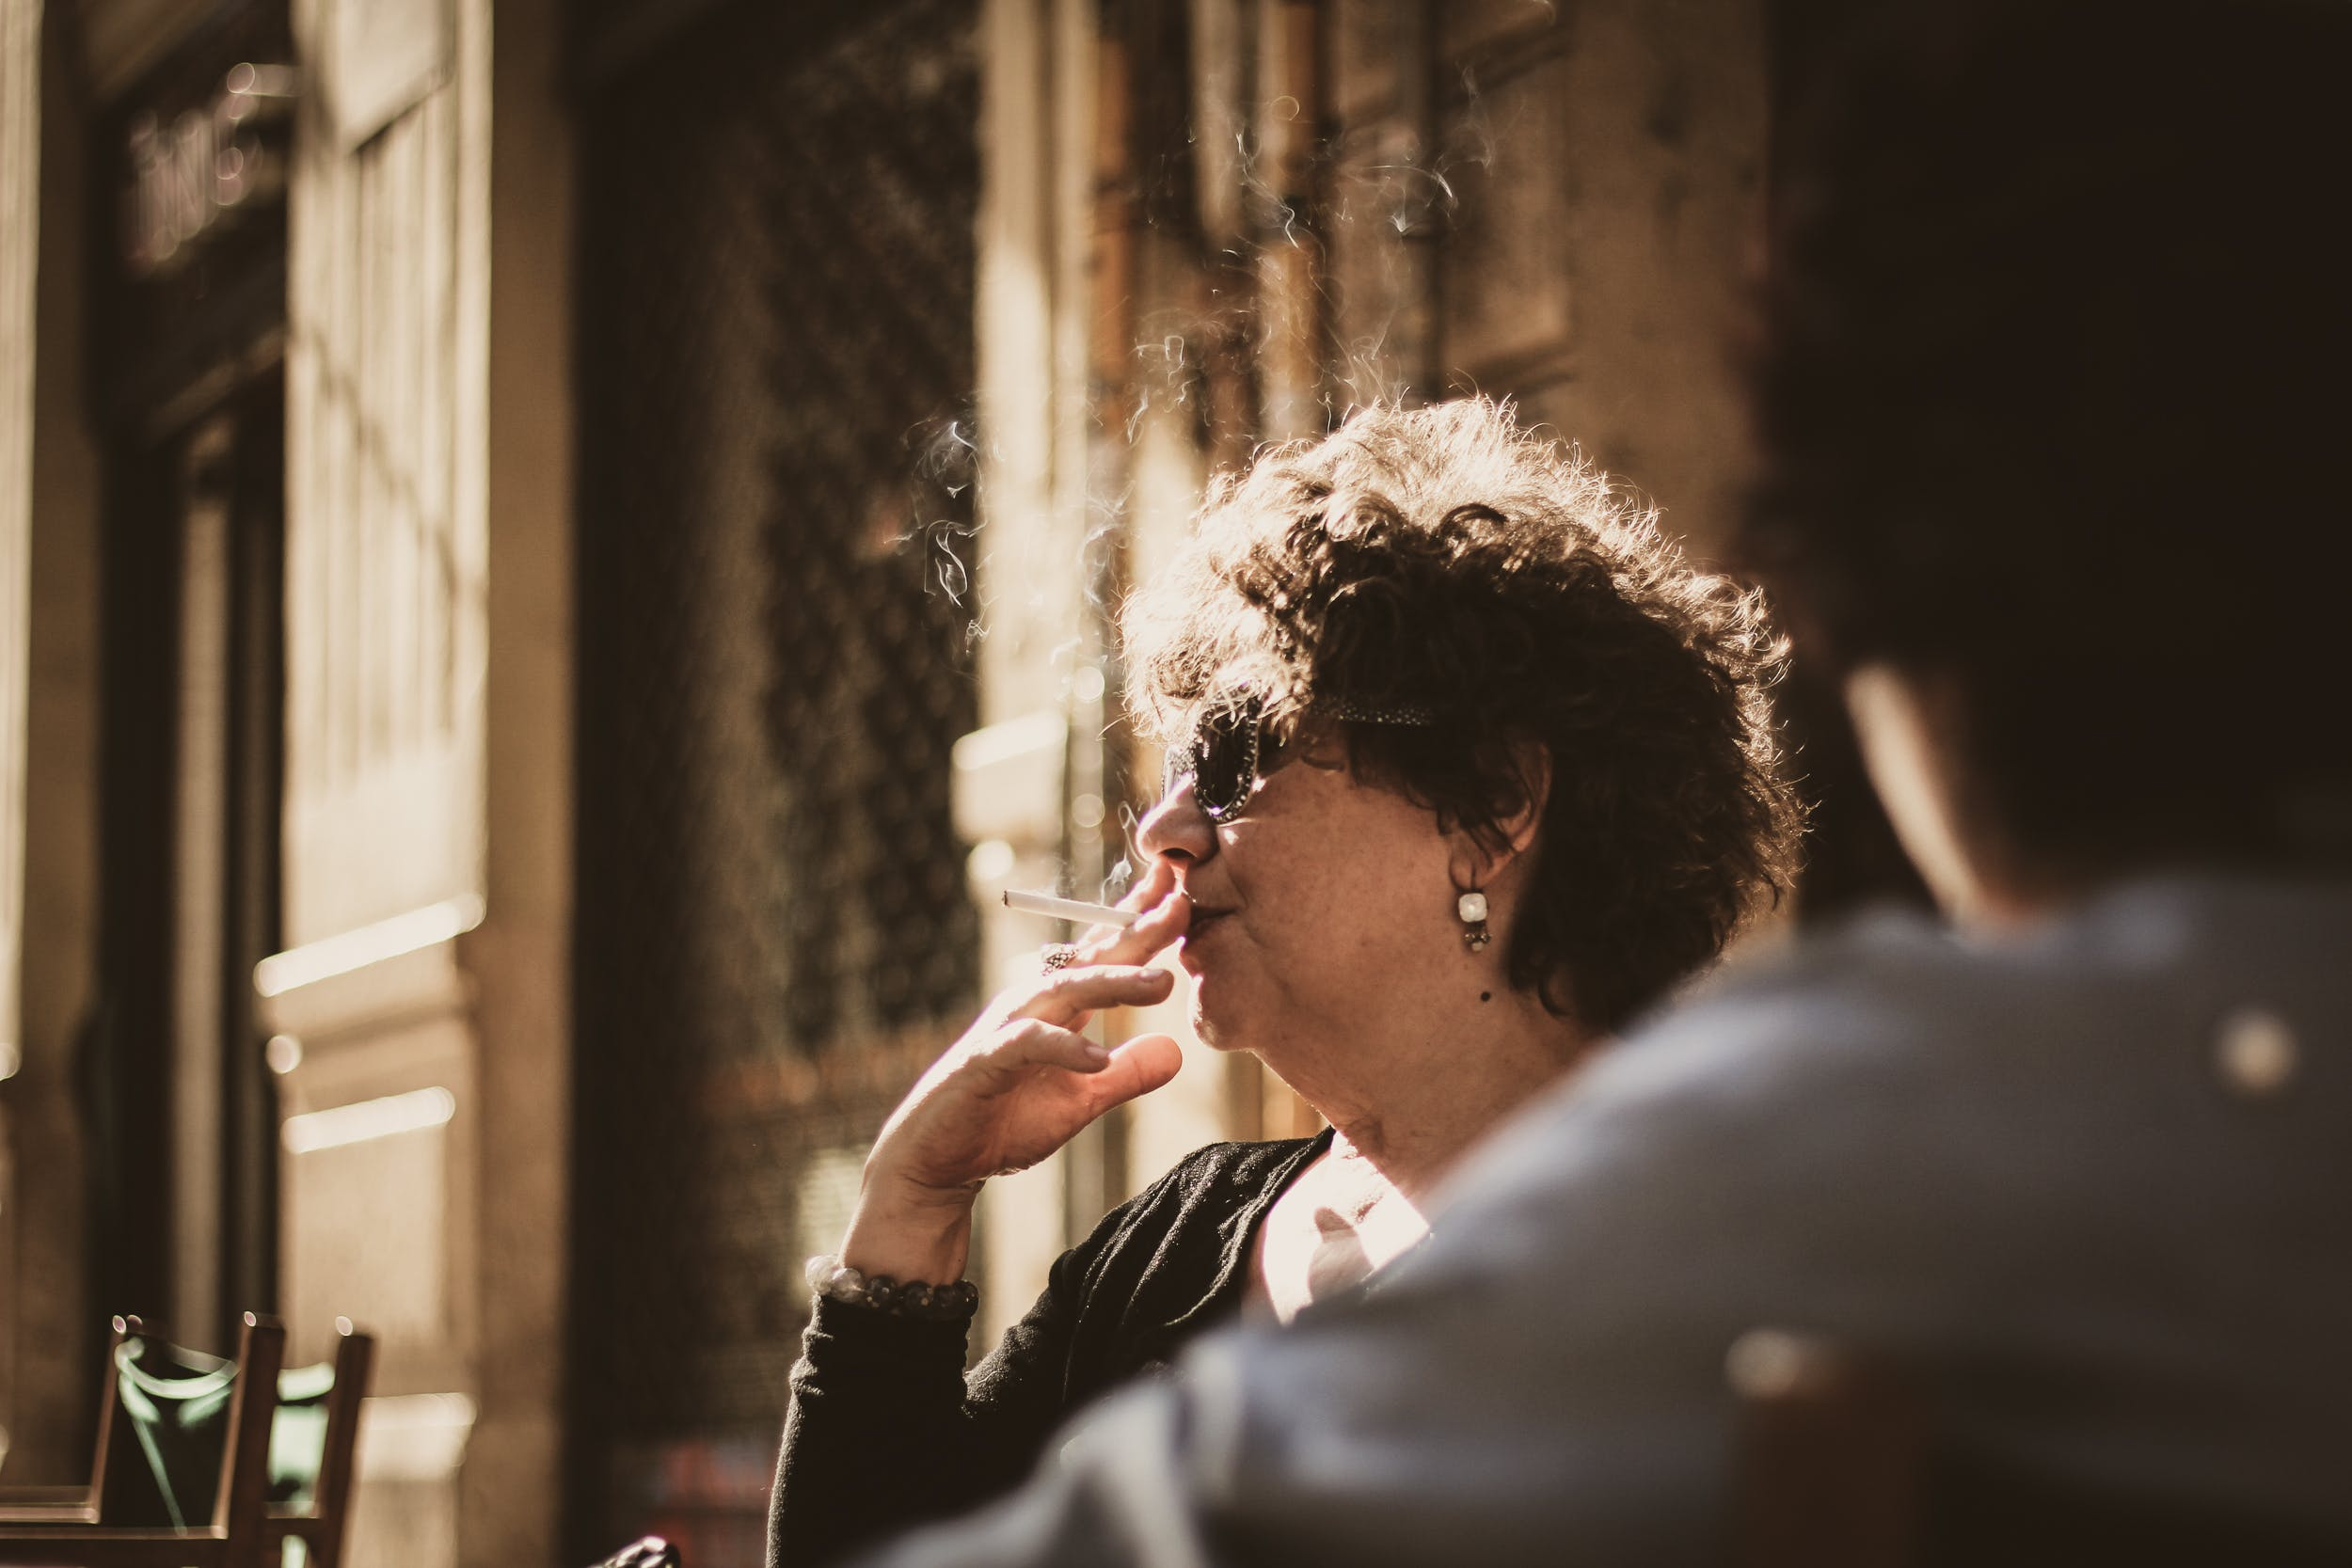 Photography of a Woman Smoking Cigarette